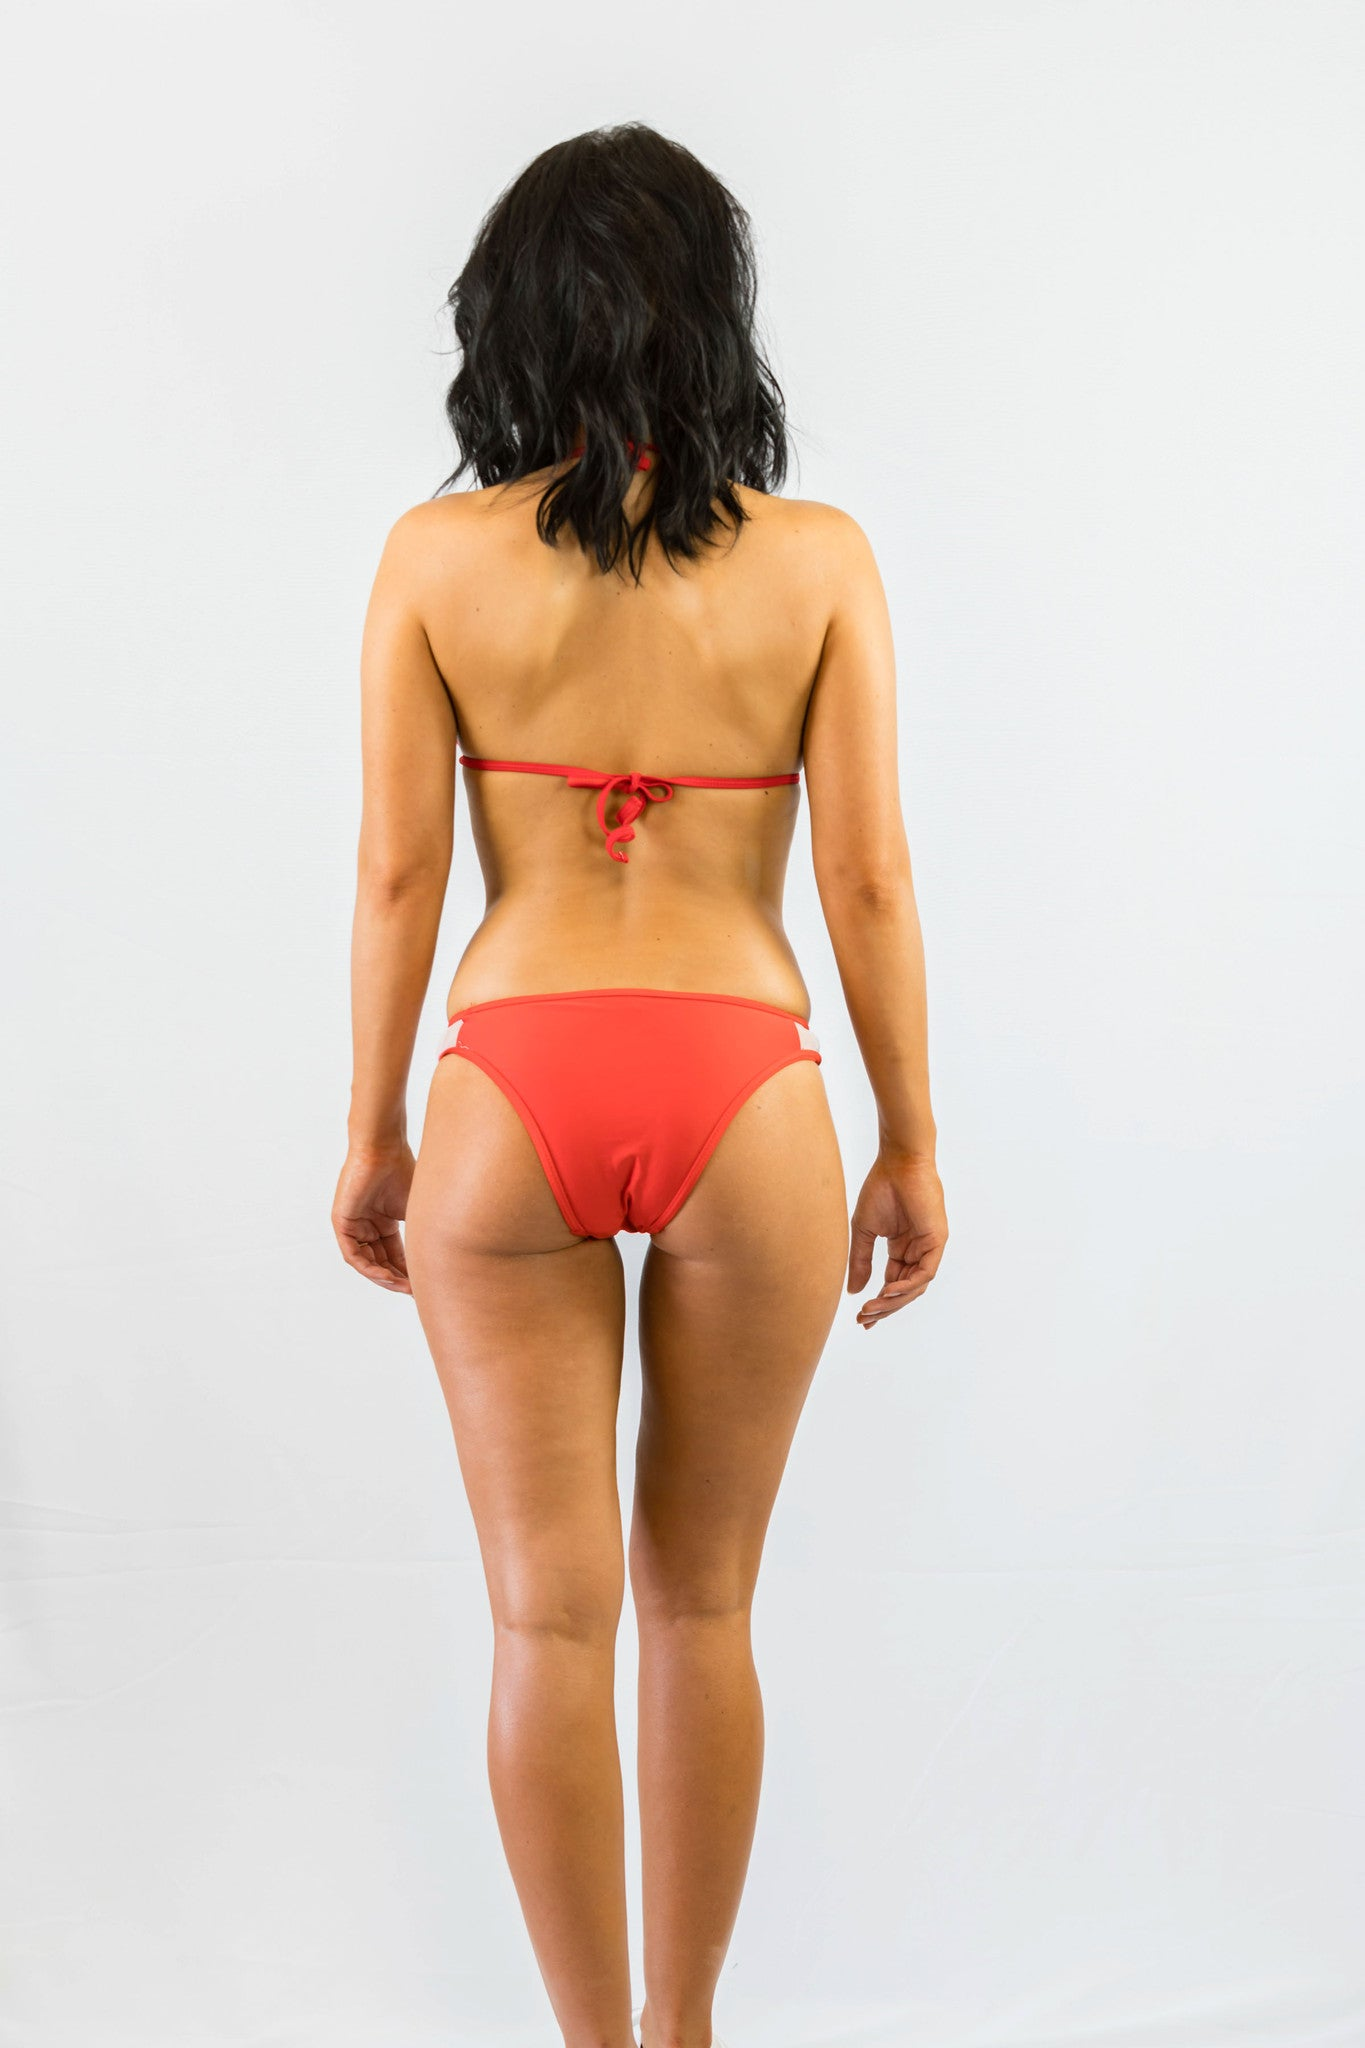 Don't Mesh With Me Bikini Set Red - SWIMWEAR - Free Vibrationz - Free Vibrationz - 5